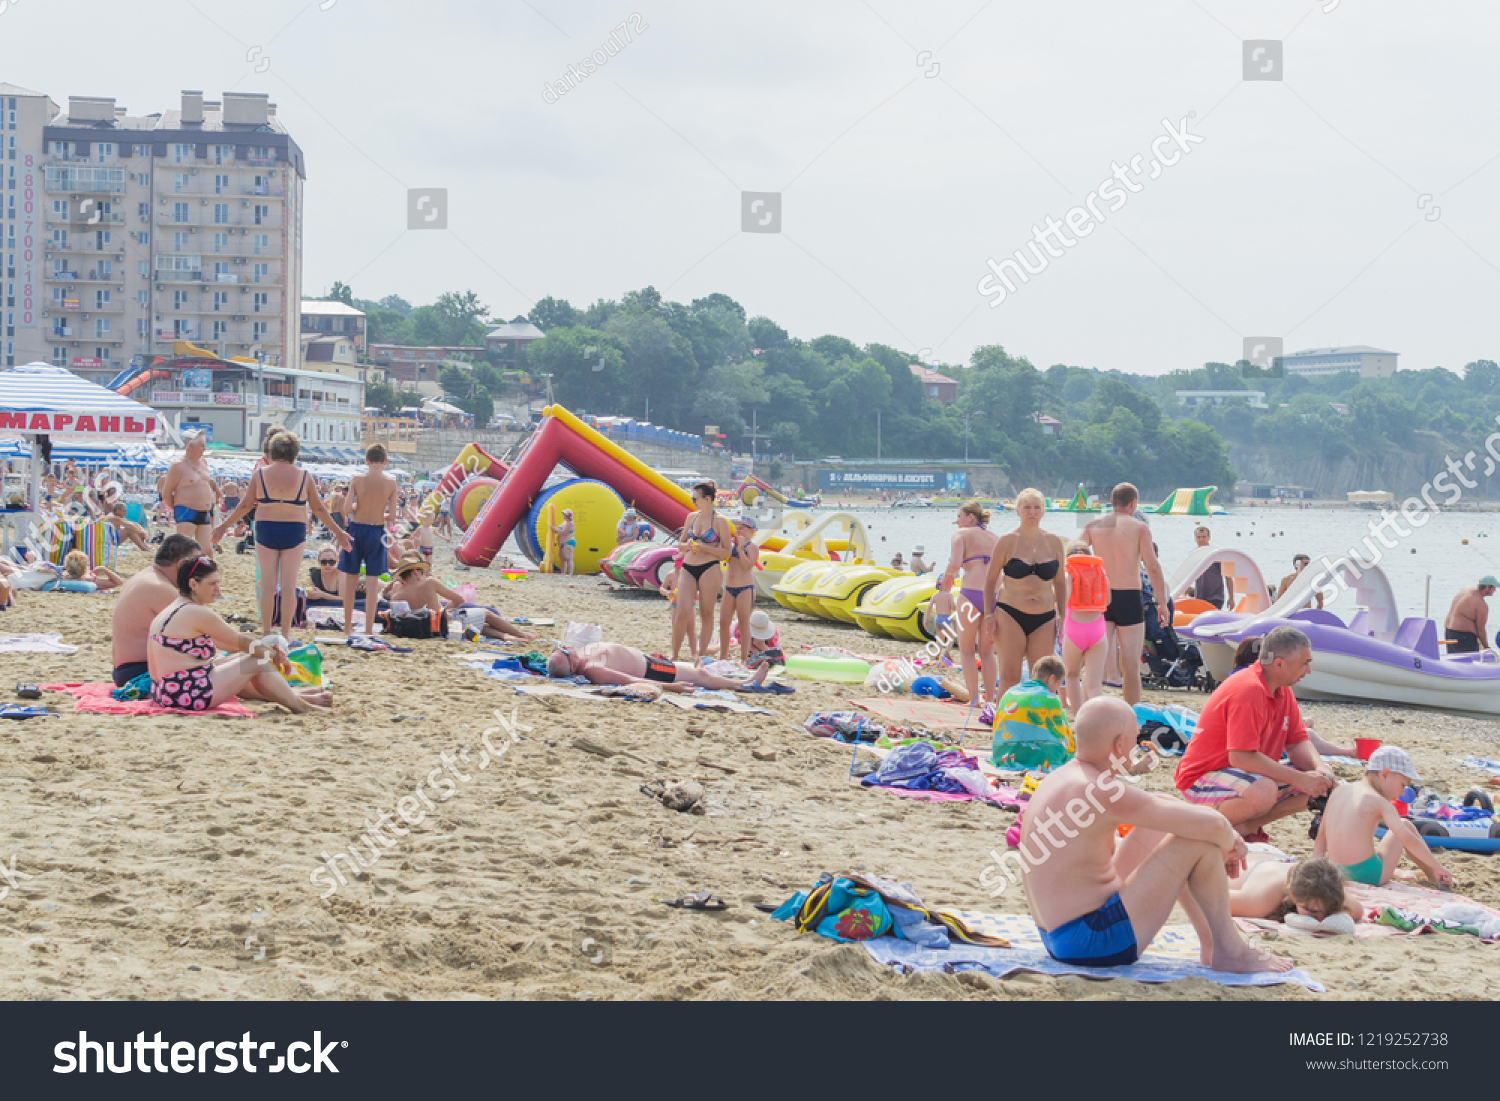 Village Dzhubga Beach Krasnodar Krai Russia People Stock Image 1219252738